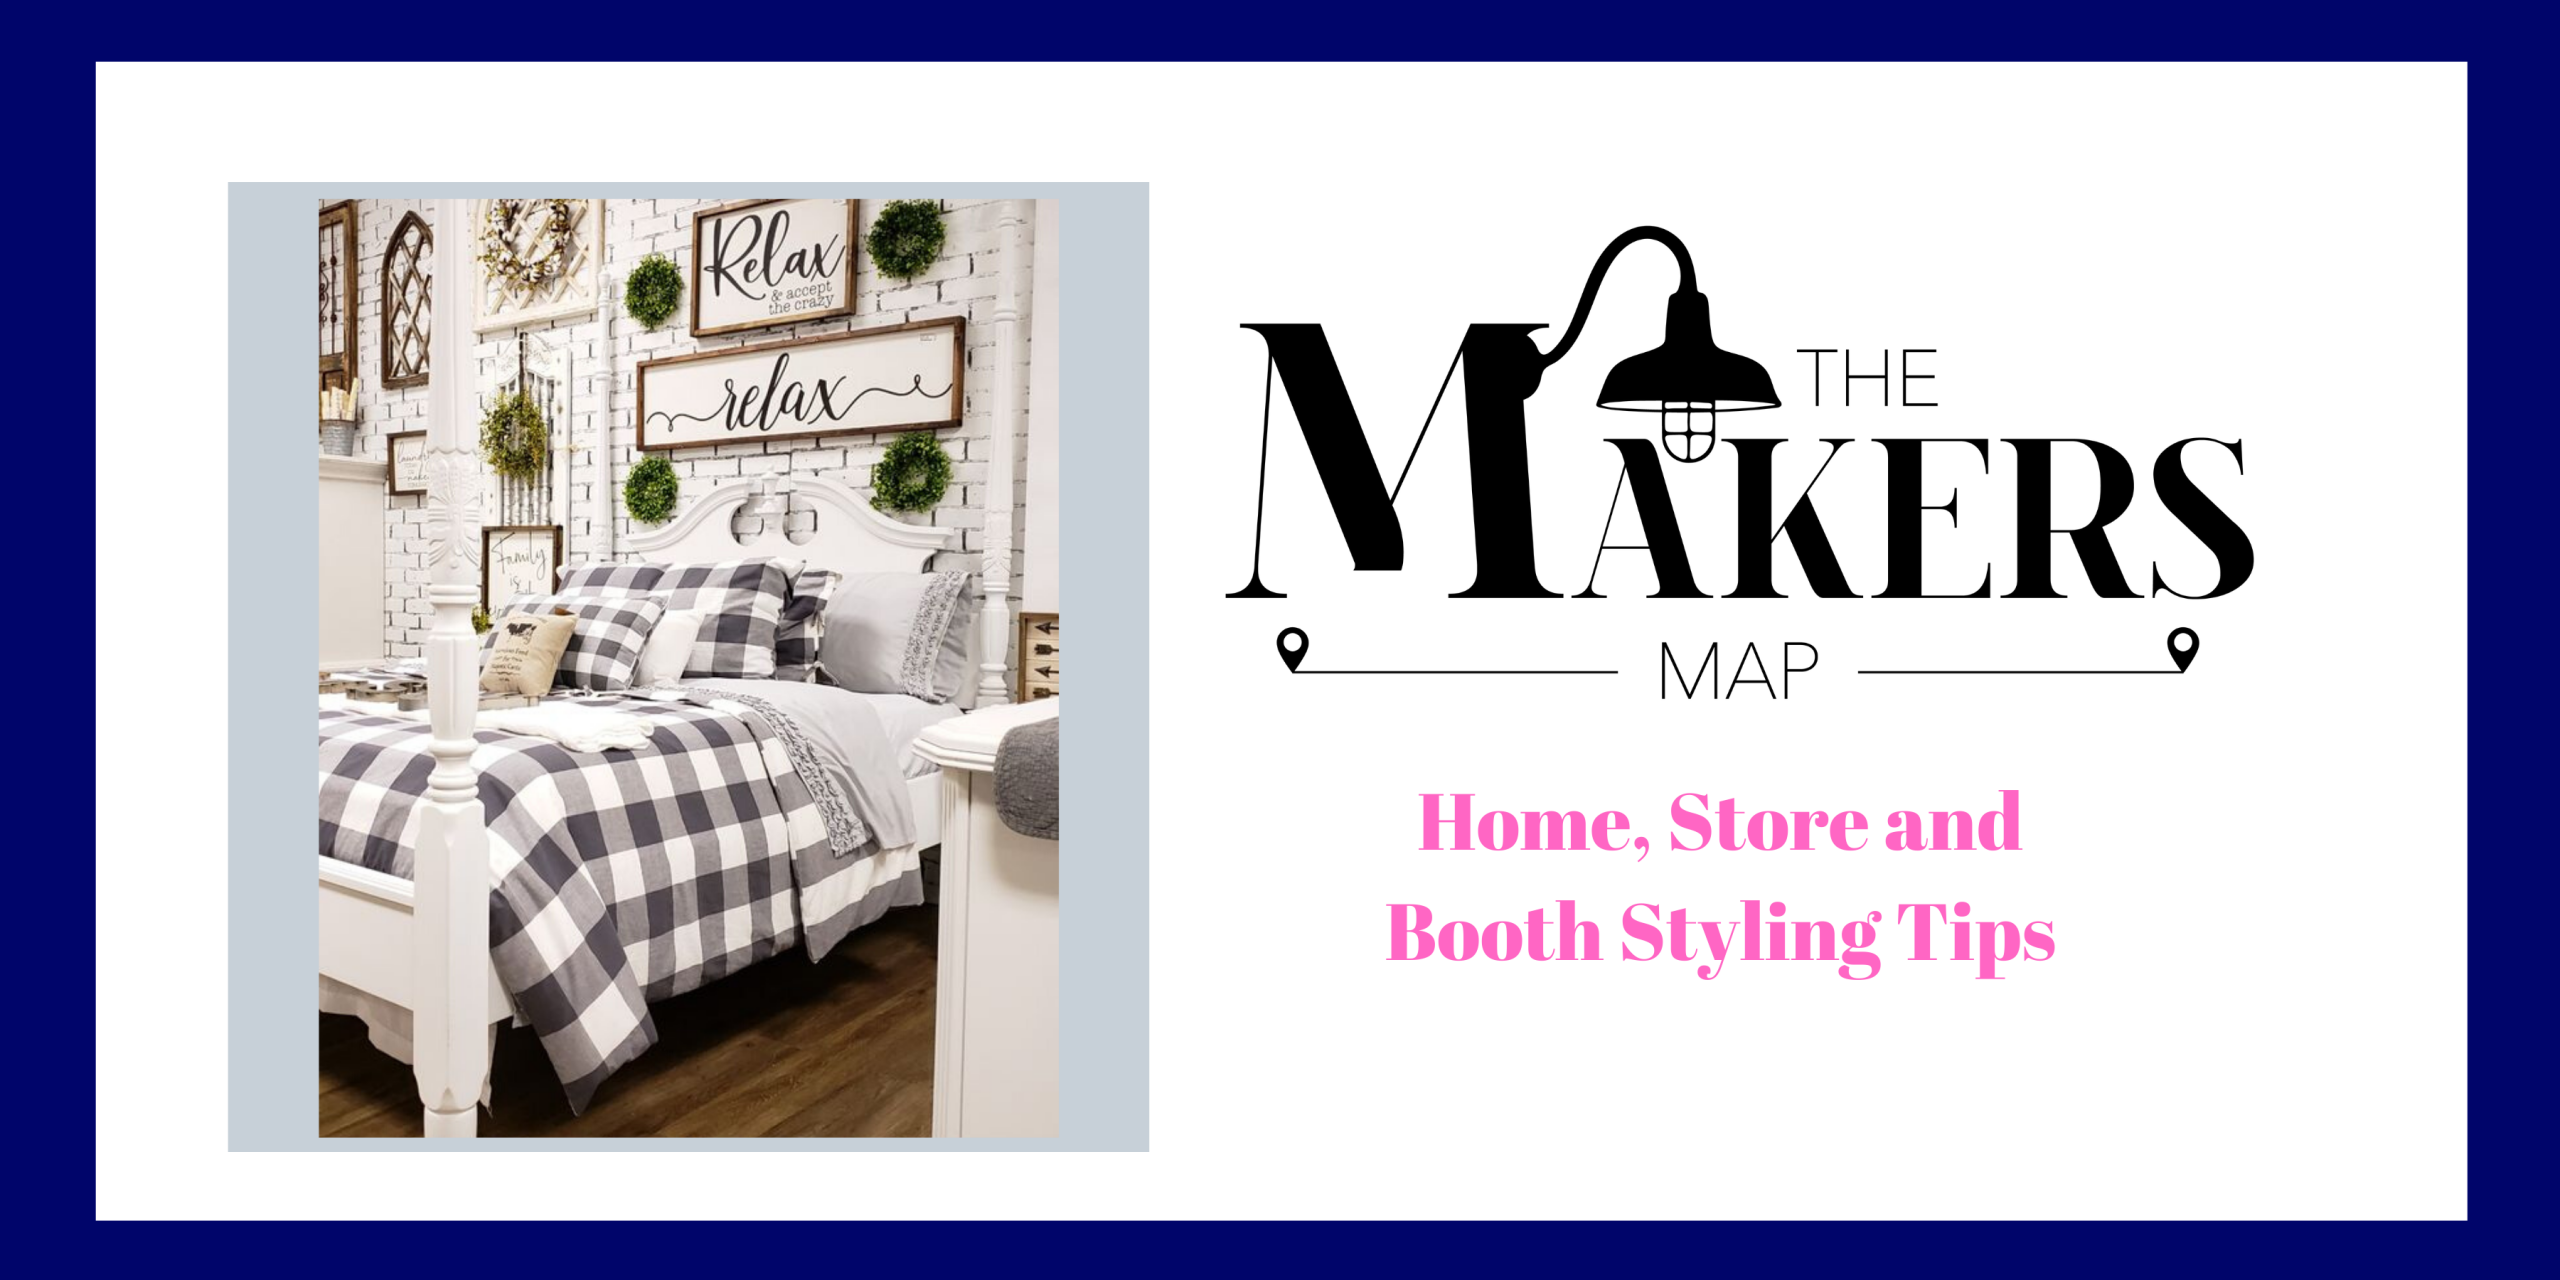 Home, Store, Booth Styling and Biz Tips